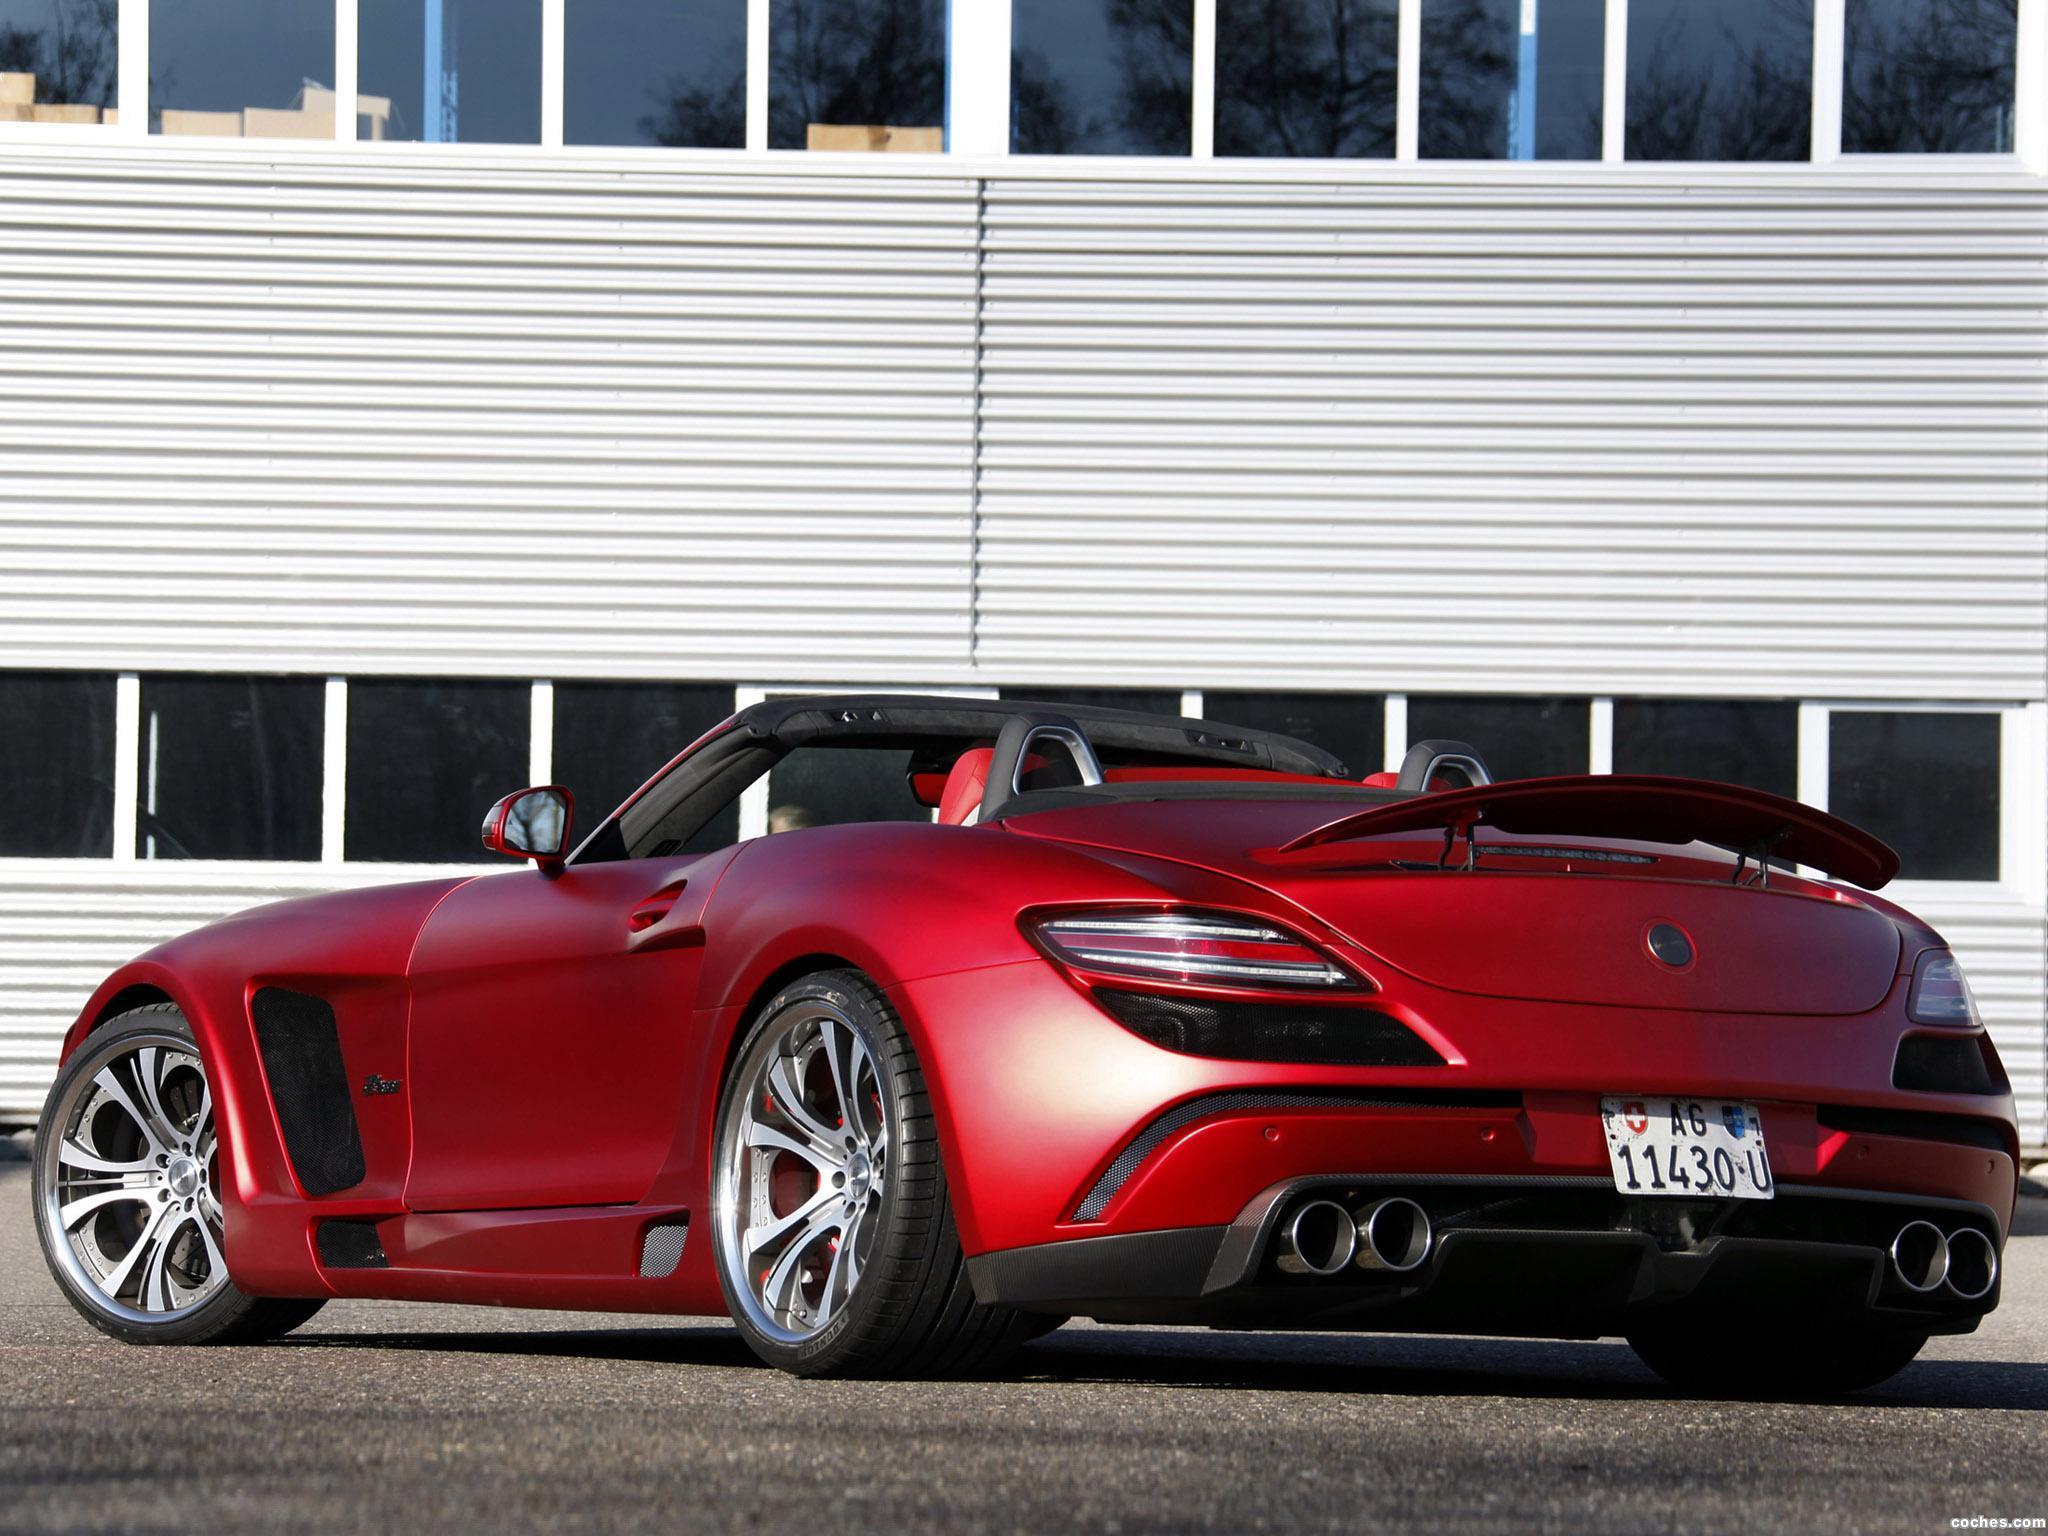 Foto 1 de FAB Design Mercedes SLS63 AMG Roadster Jetstream R197 2012